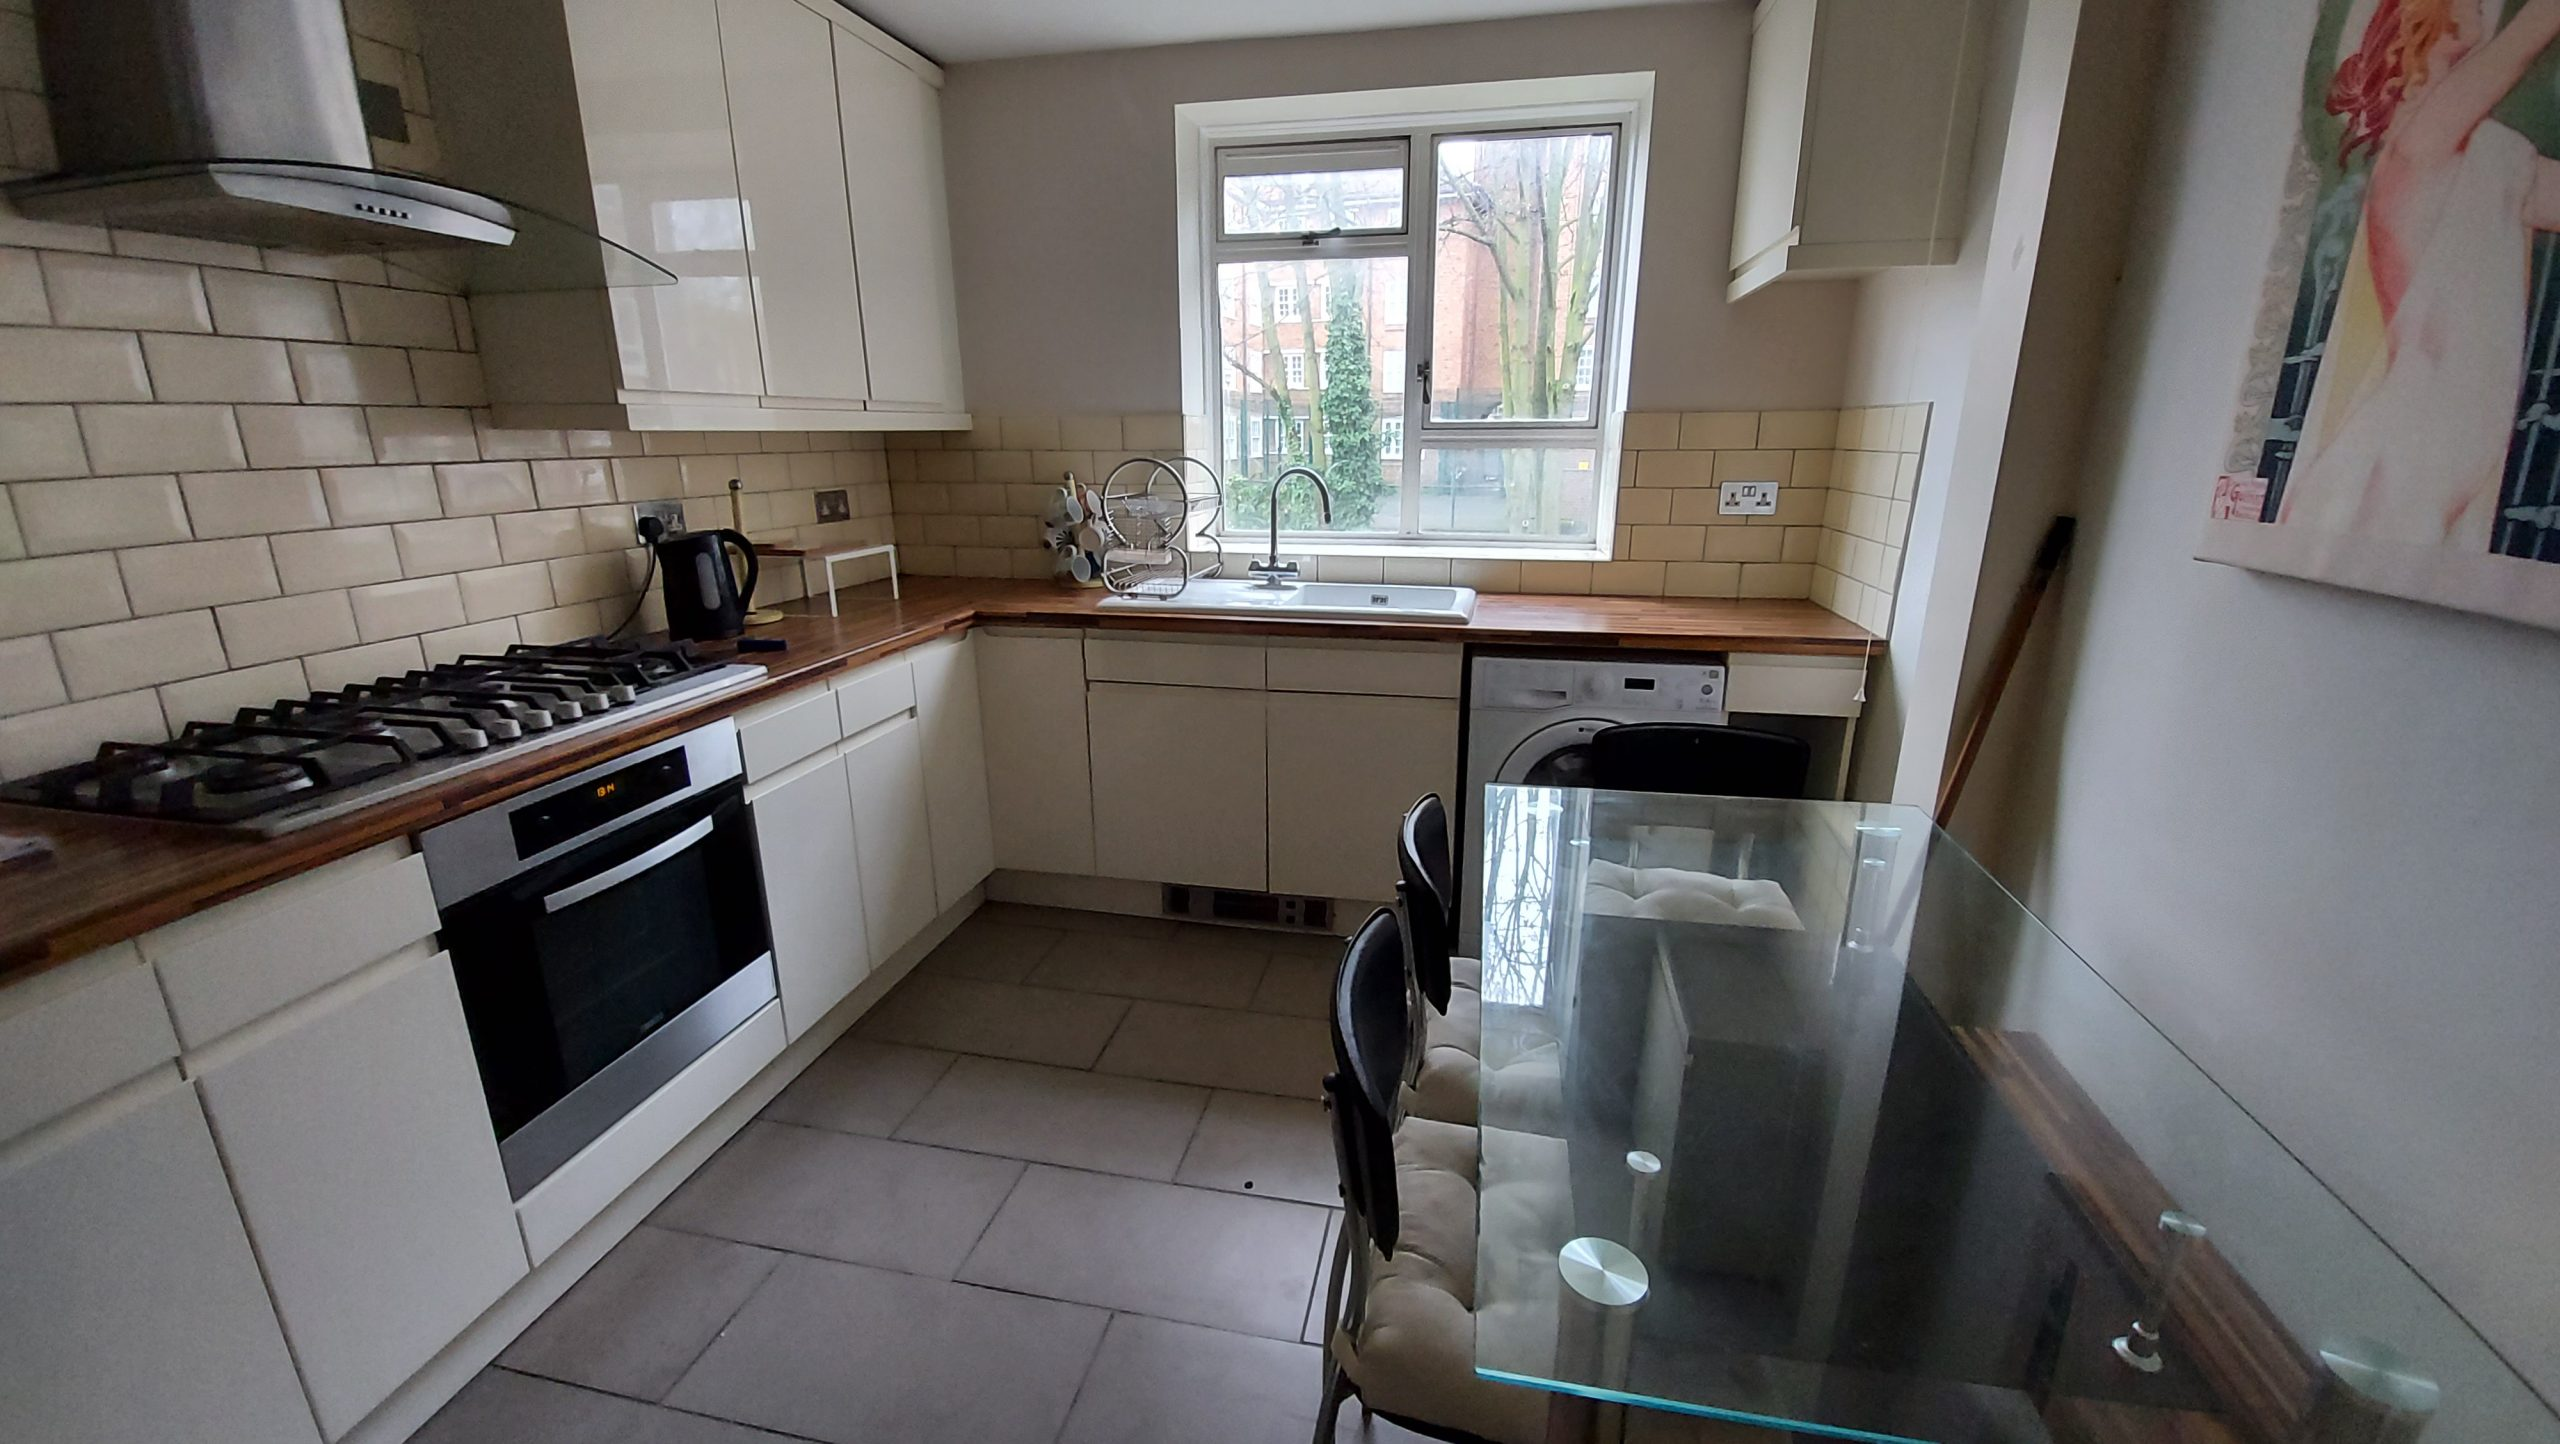 3 Bedroom Flat Goodrich House Amhurst Park N16 5AW